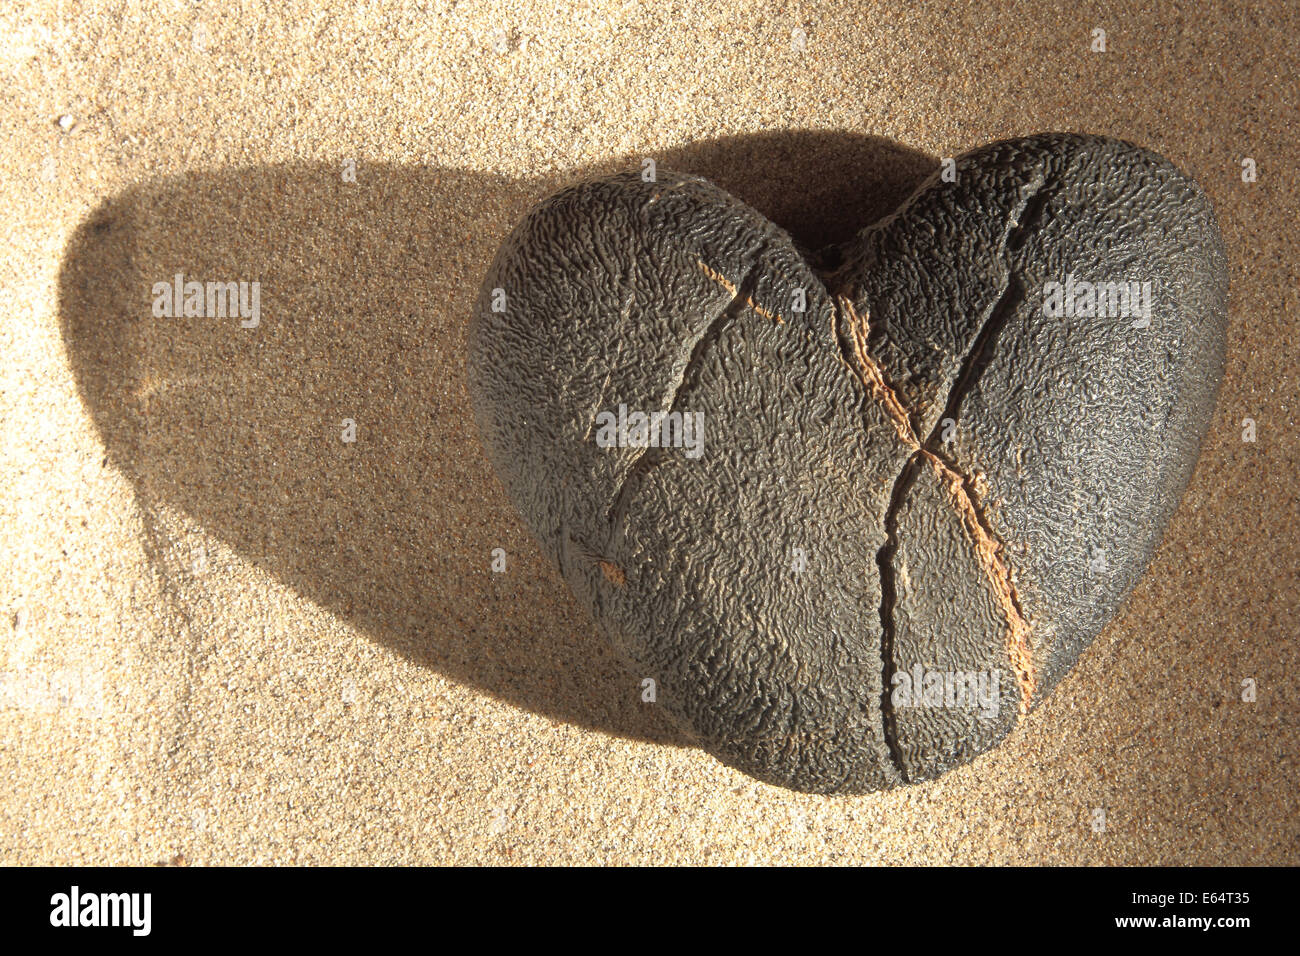 great prices innovative design on feet images of Dolomite Rock Stock Photos & Dolomite Rock Stock Images - Alamy